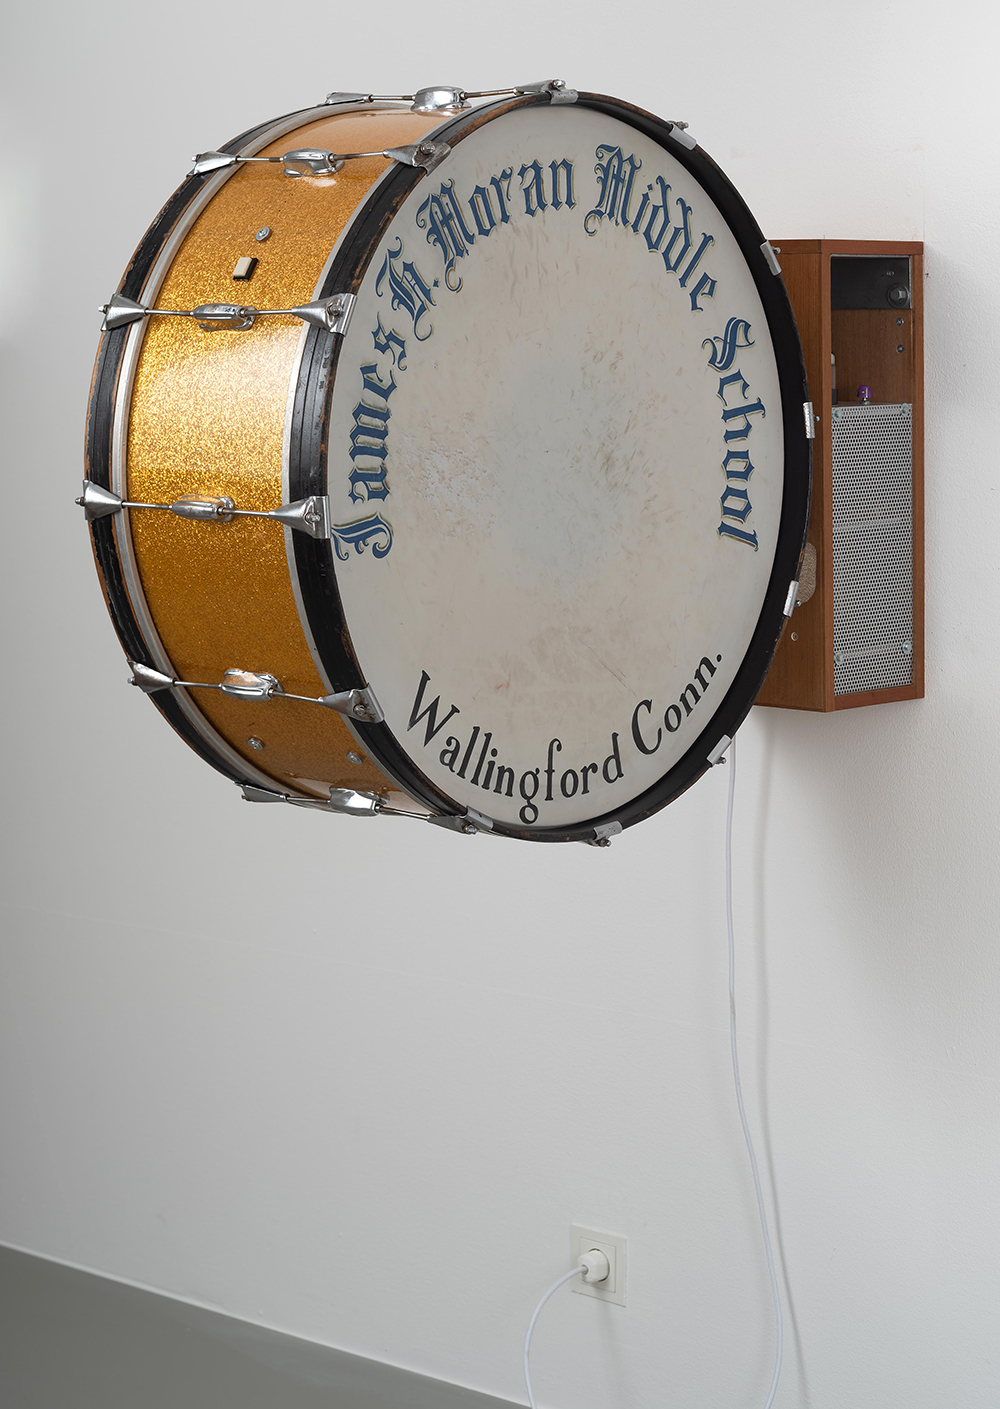 Clay Ketter, 1975 Resonator, 2019, drum with amplifier, 76 x 32 x 97,5 cm